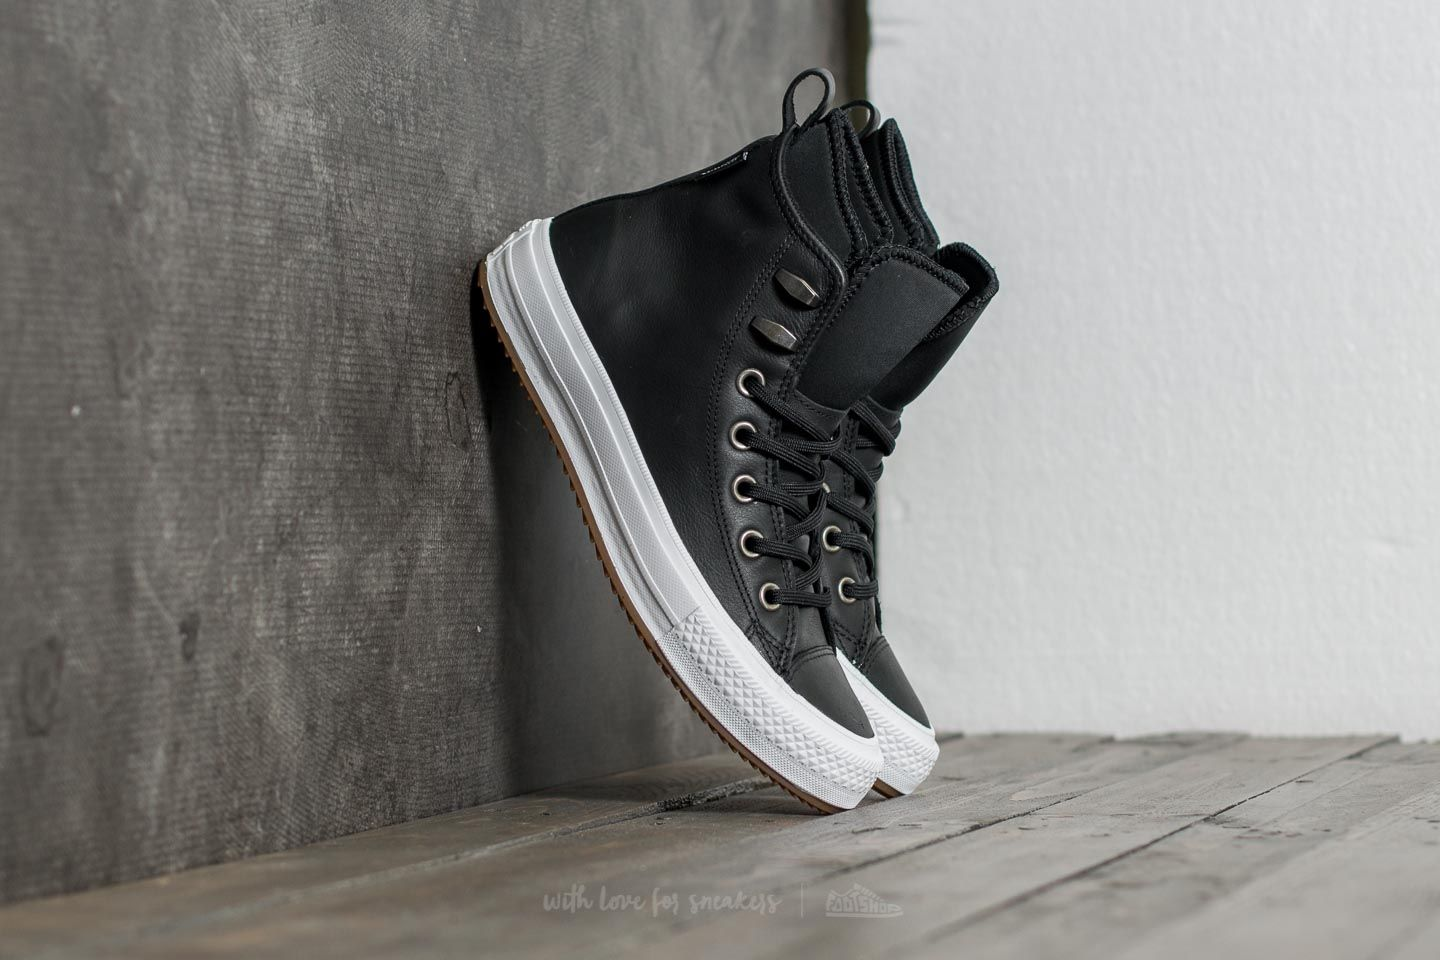 Waterproof All Boot Chuck Black Converse Star Hi Taylor FKl1c3TJ